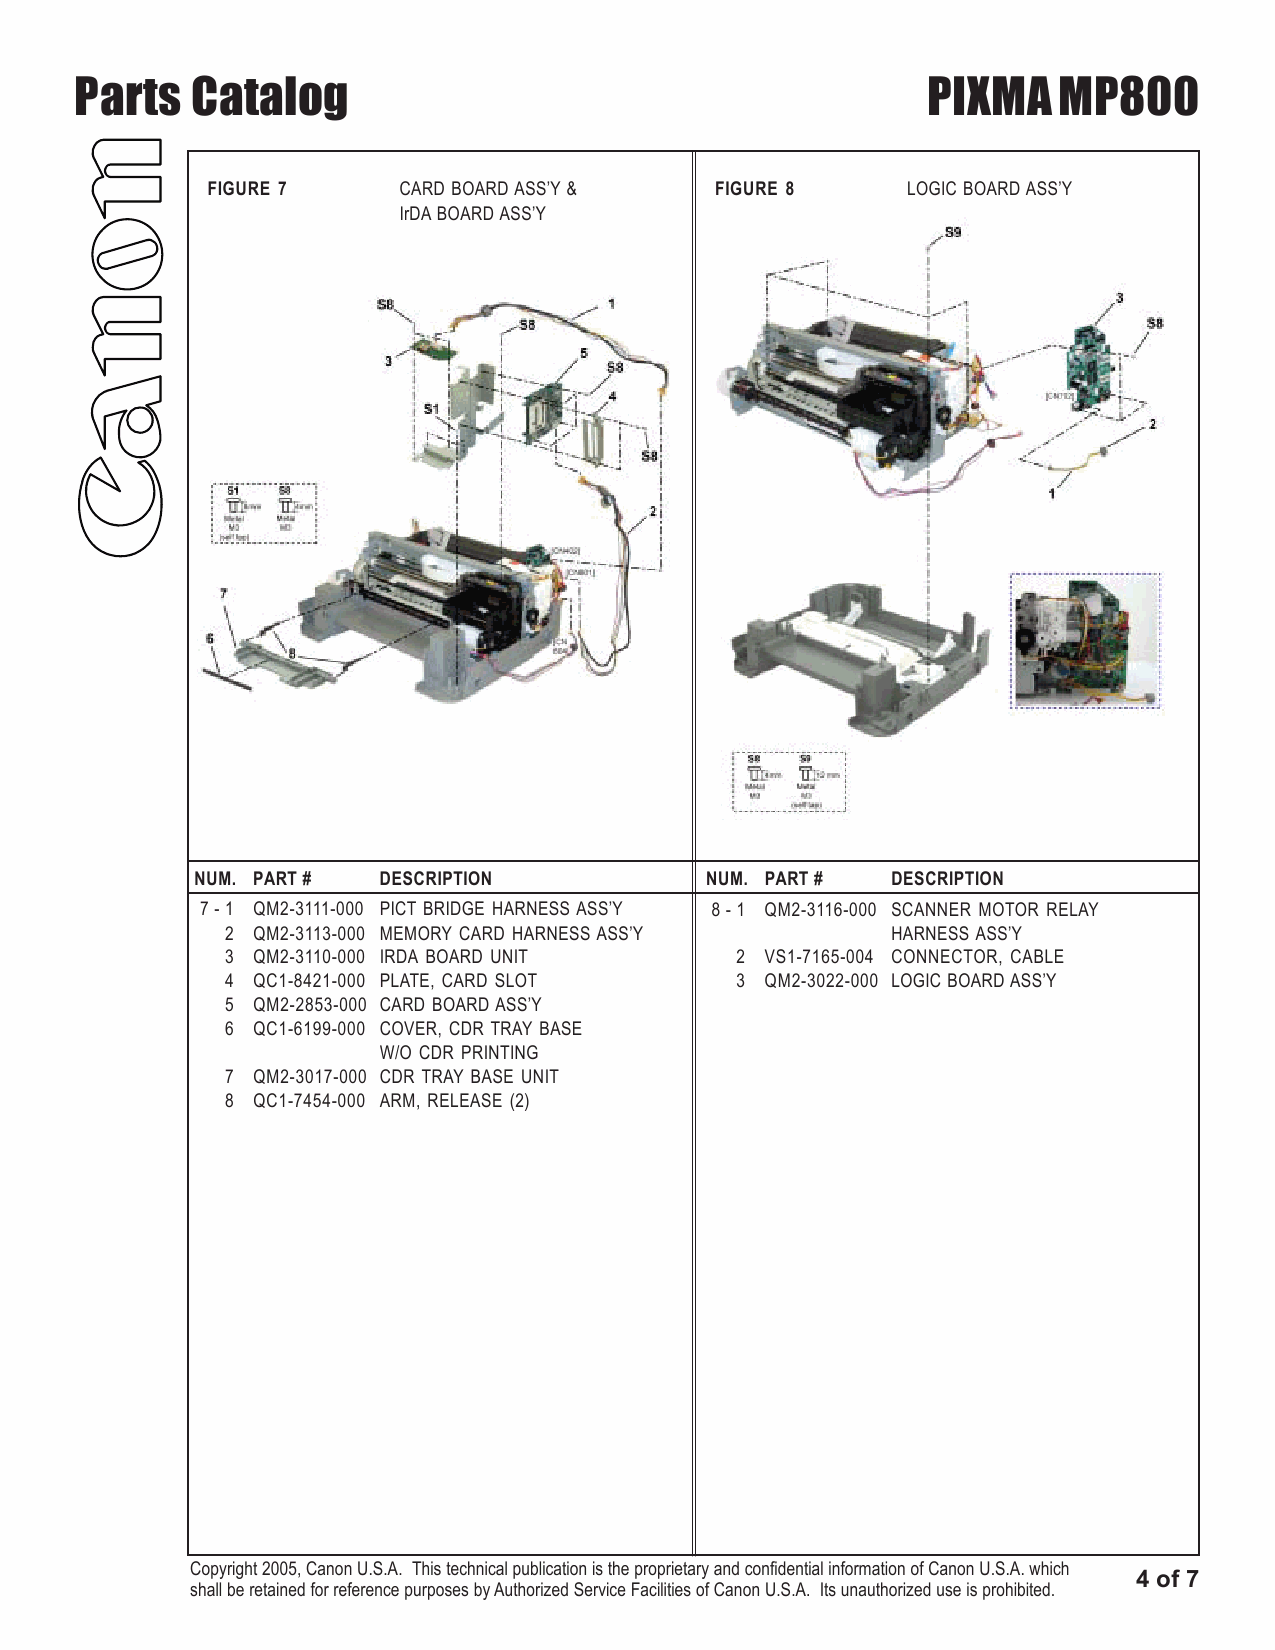 Canon PIXMA MP800 Parts Catalog Manual-5